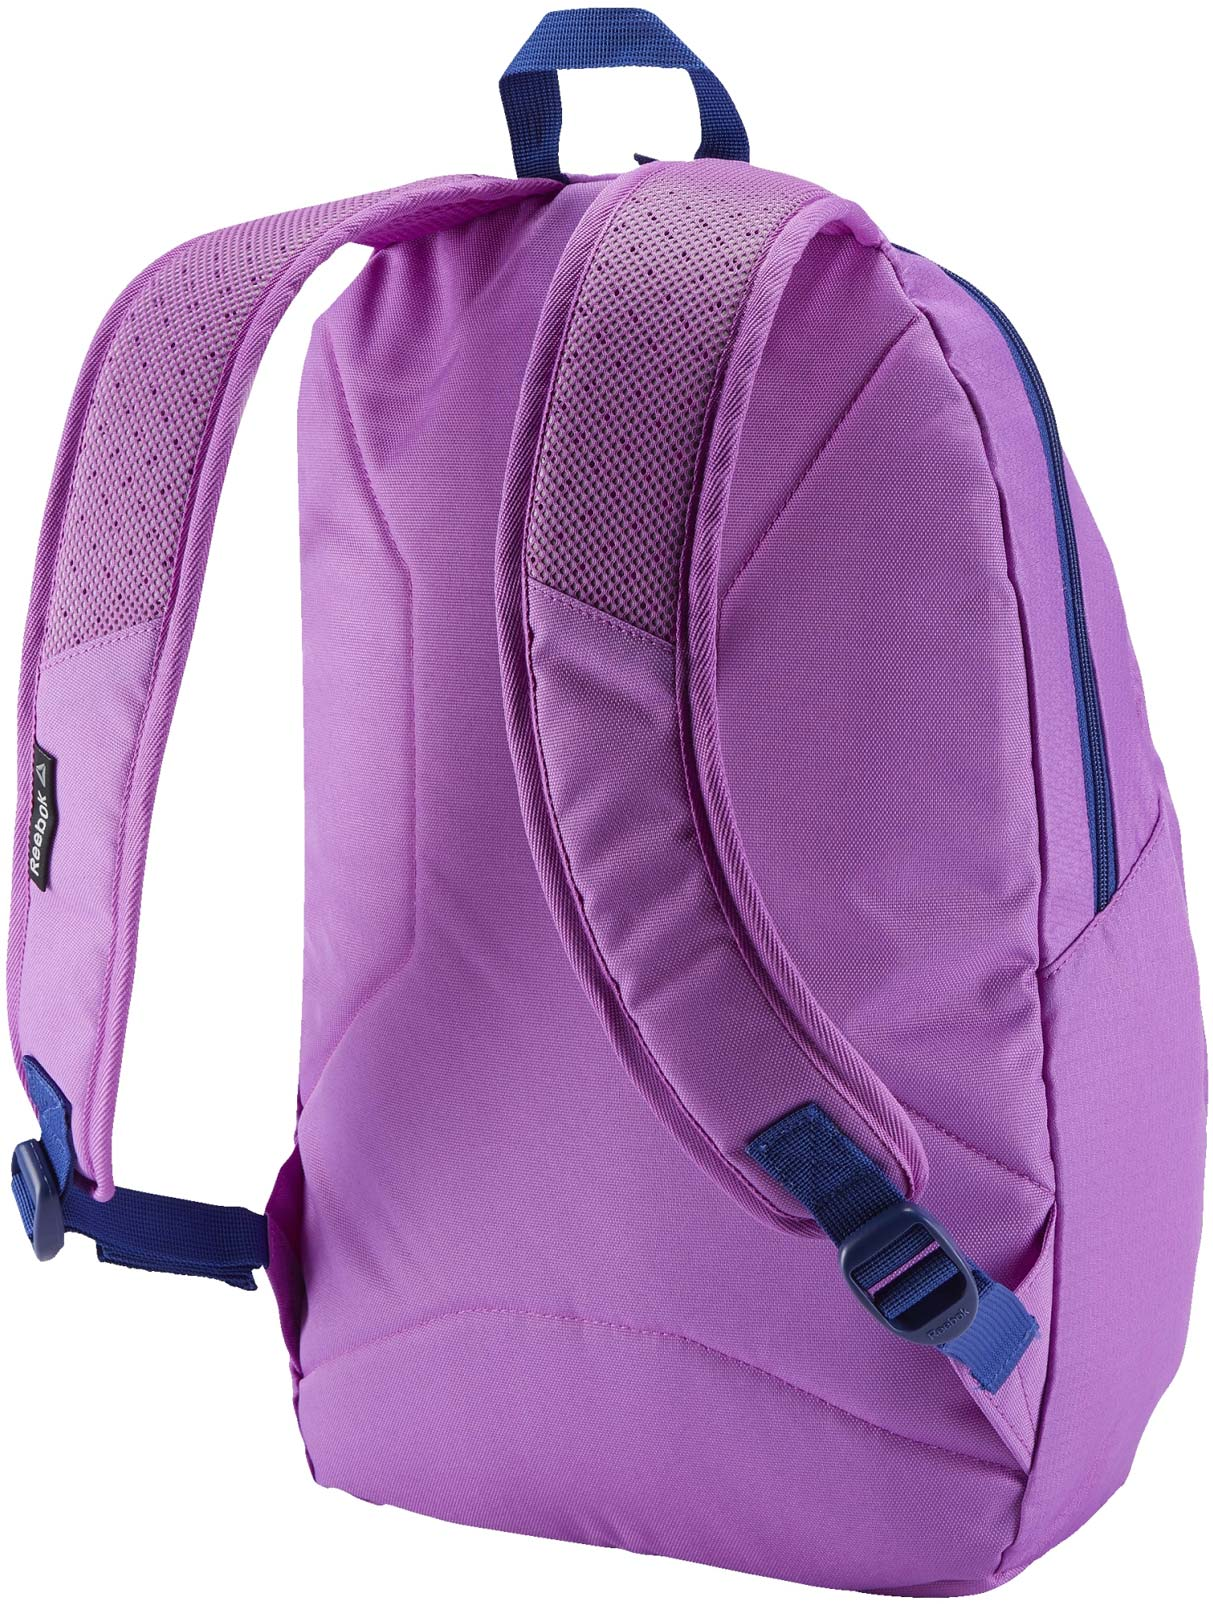 7fff3c8257 Reebok FOUNDATION MEDIUM BPK. Backpack. Backpack. Backpack. Backpack.  Backpack. Backpack